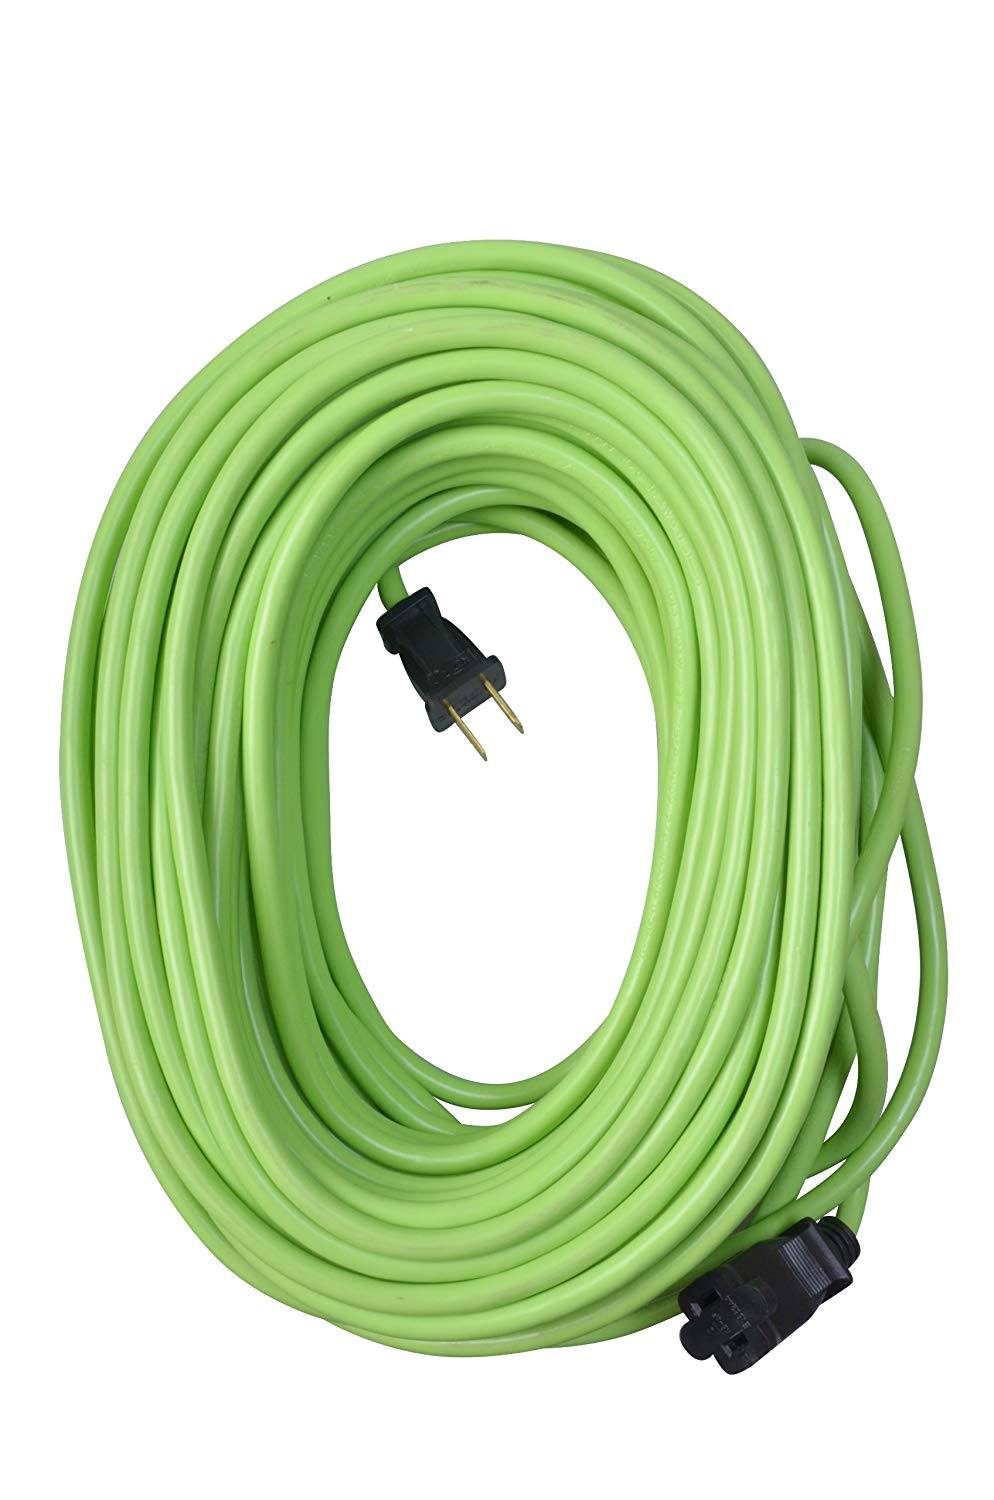 hight resolution of yard master 9940010 outdoor garden extension cord lime green 120 foot